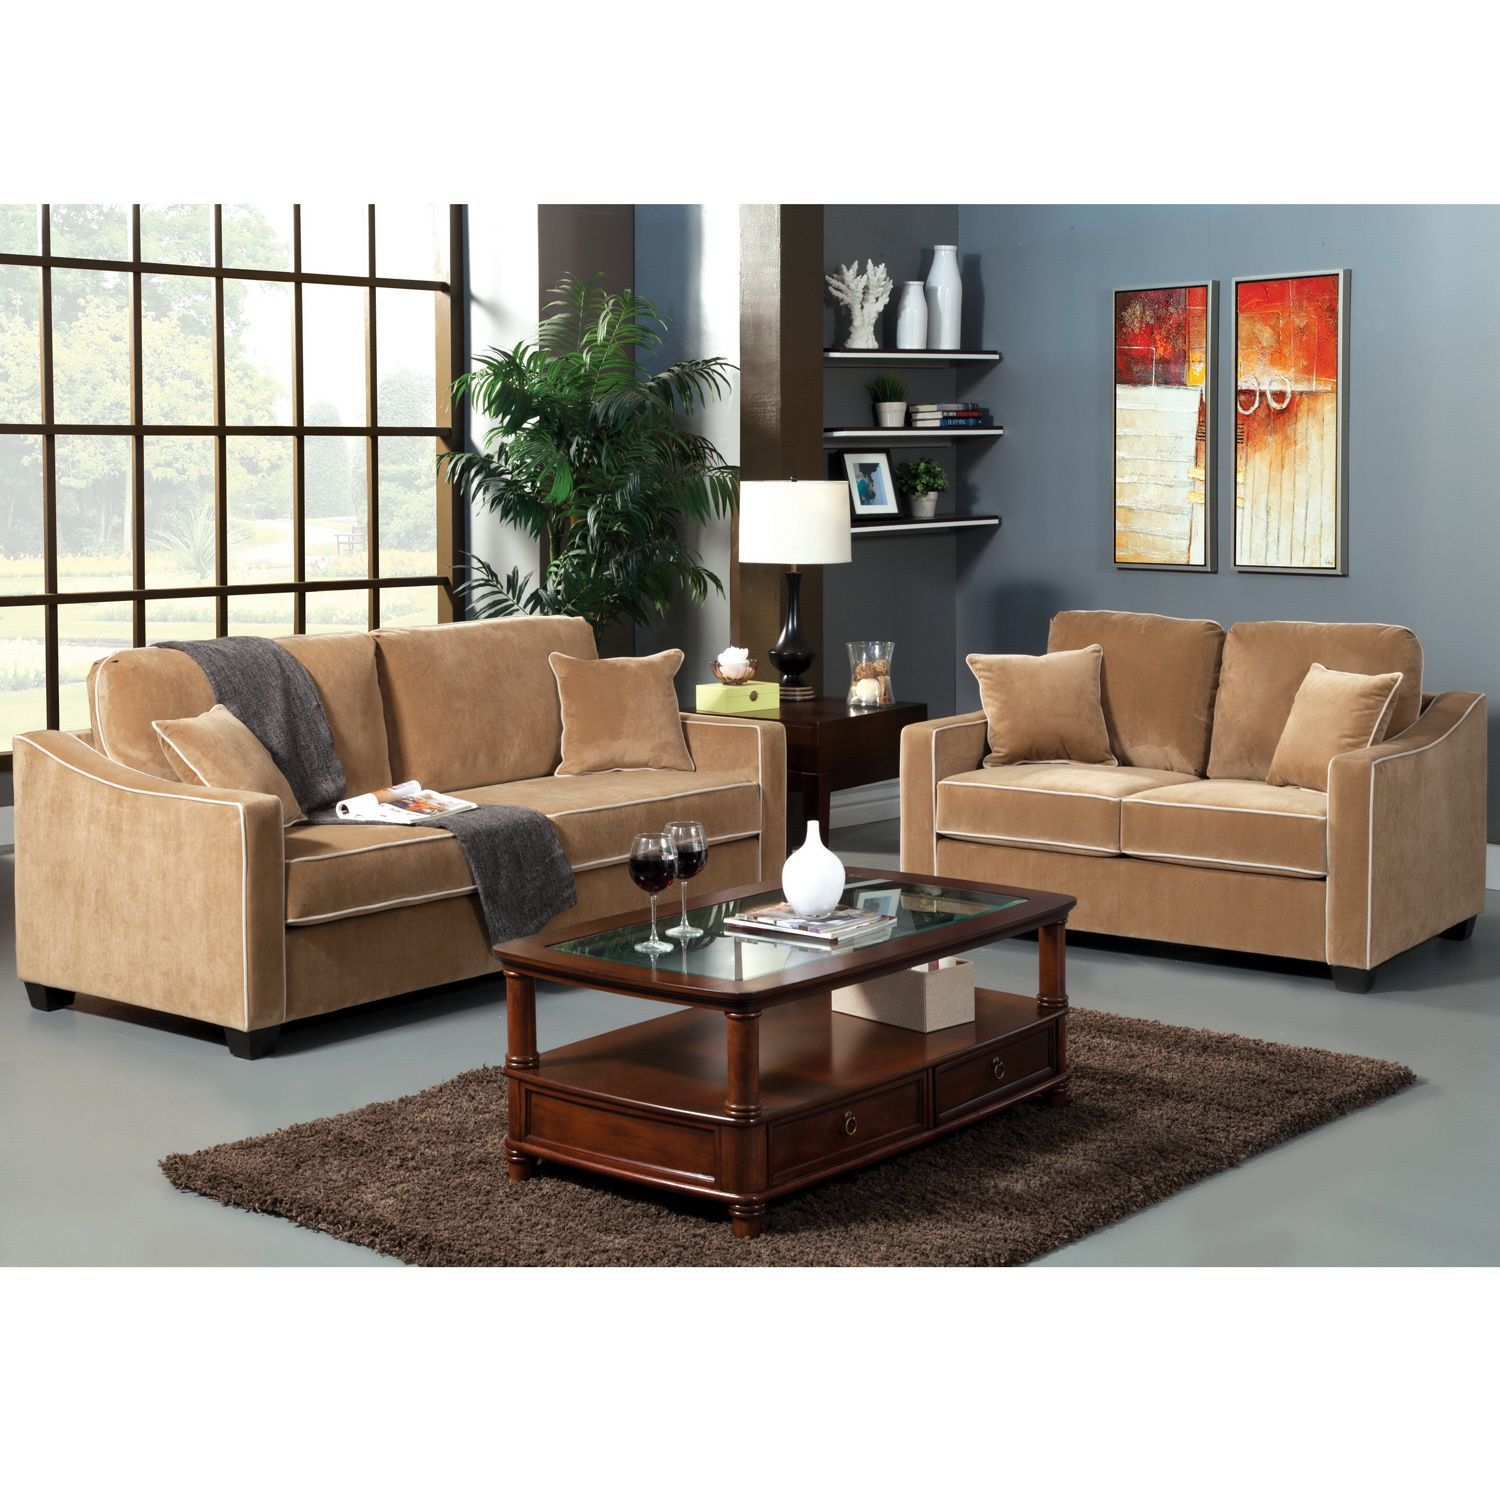 Florence Contemporary Style 2 PC Sofa and